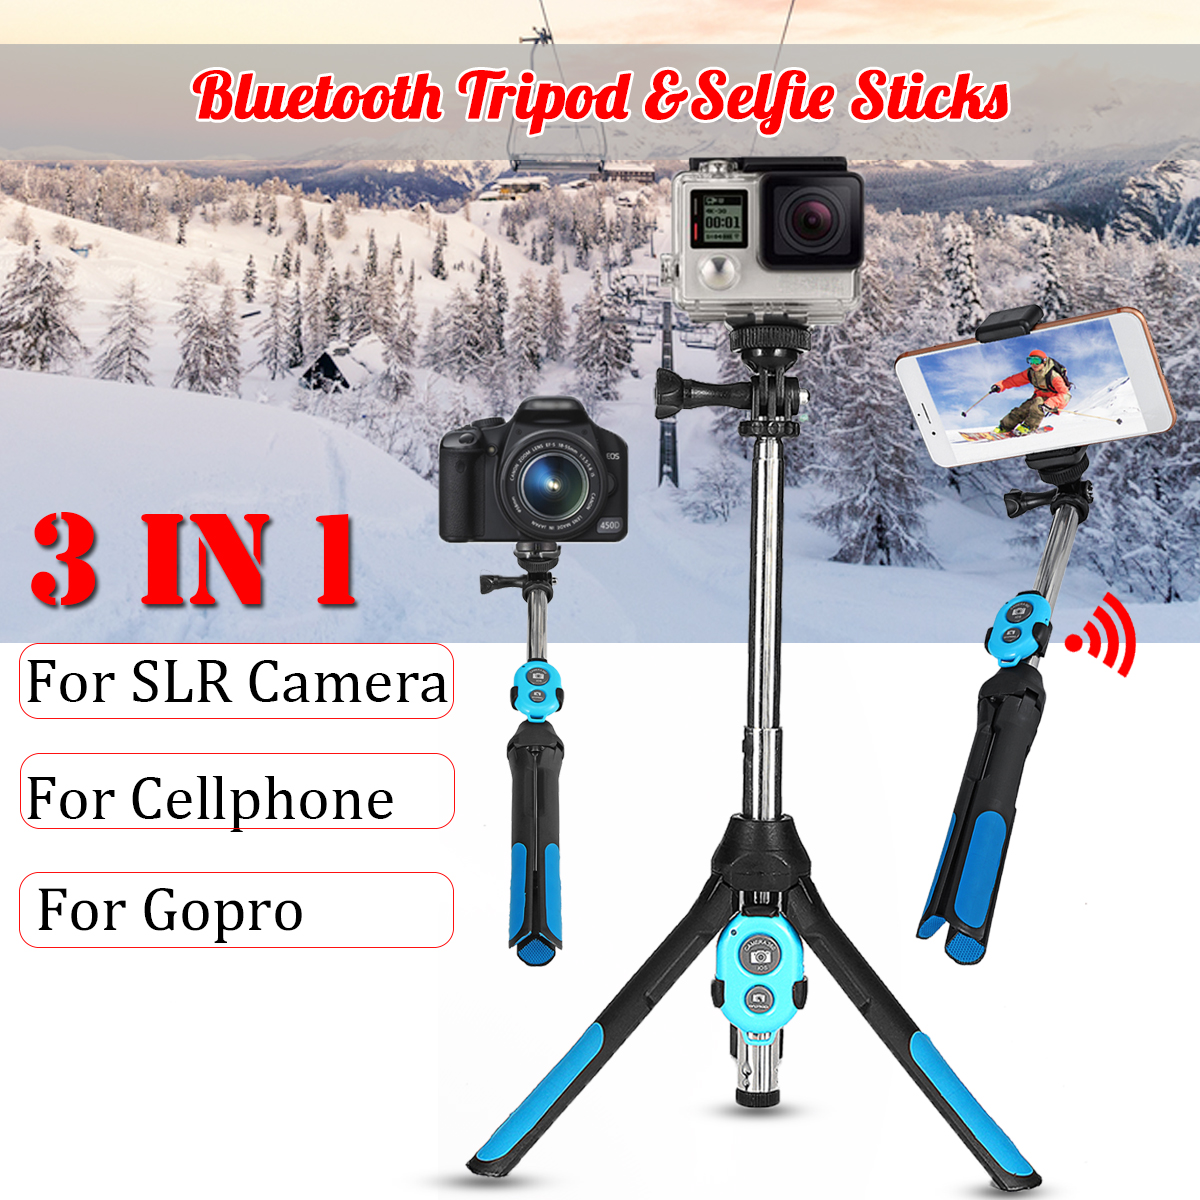 3 in 1 Camera Tripod bluetooth Selfie Stick Wireless Monopod For Gopro 5 6 7 Sports SLR Camera For iPhone XR XS X 8 Smartphone